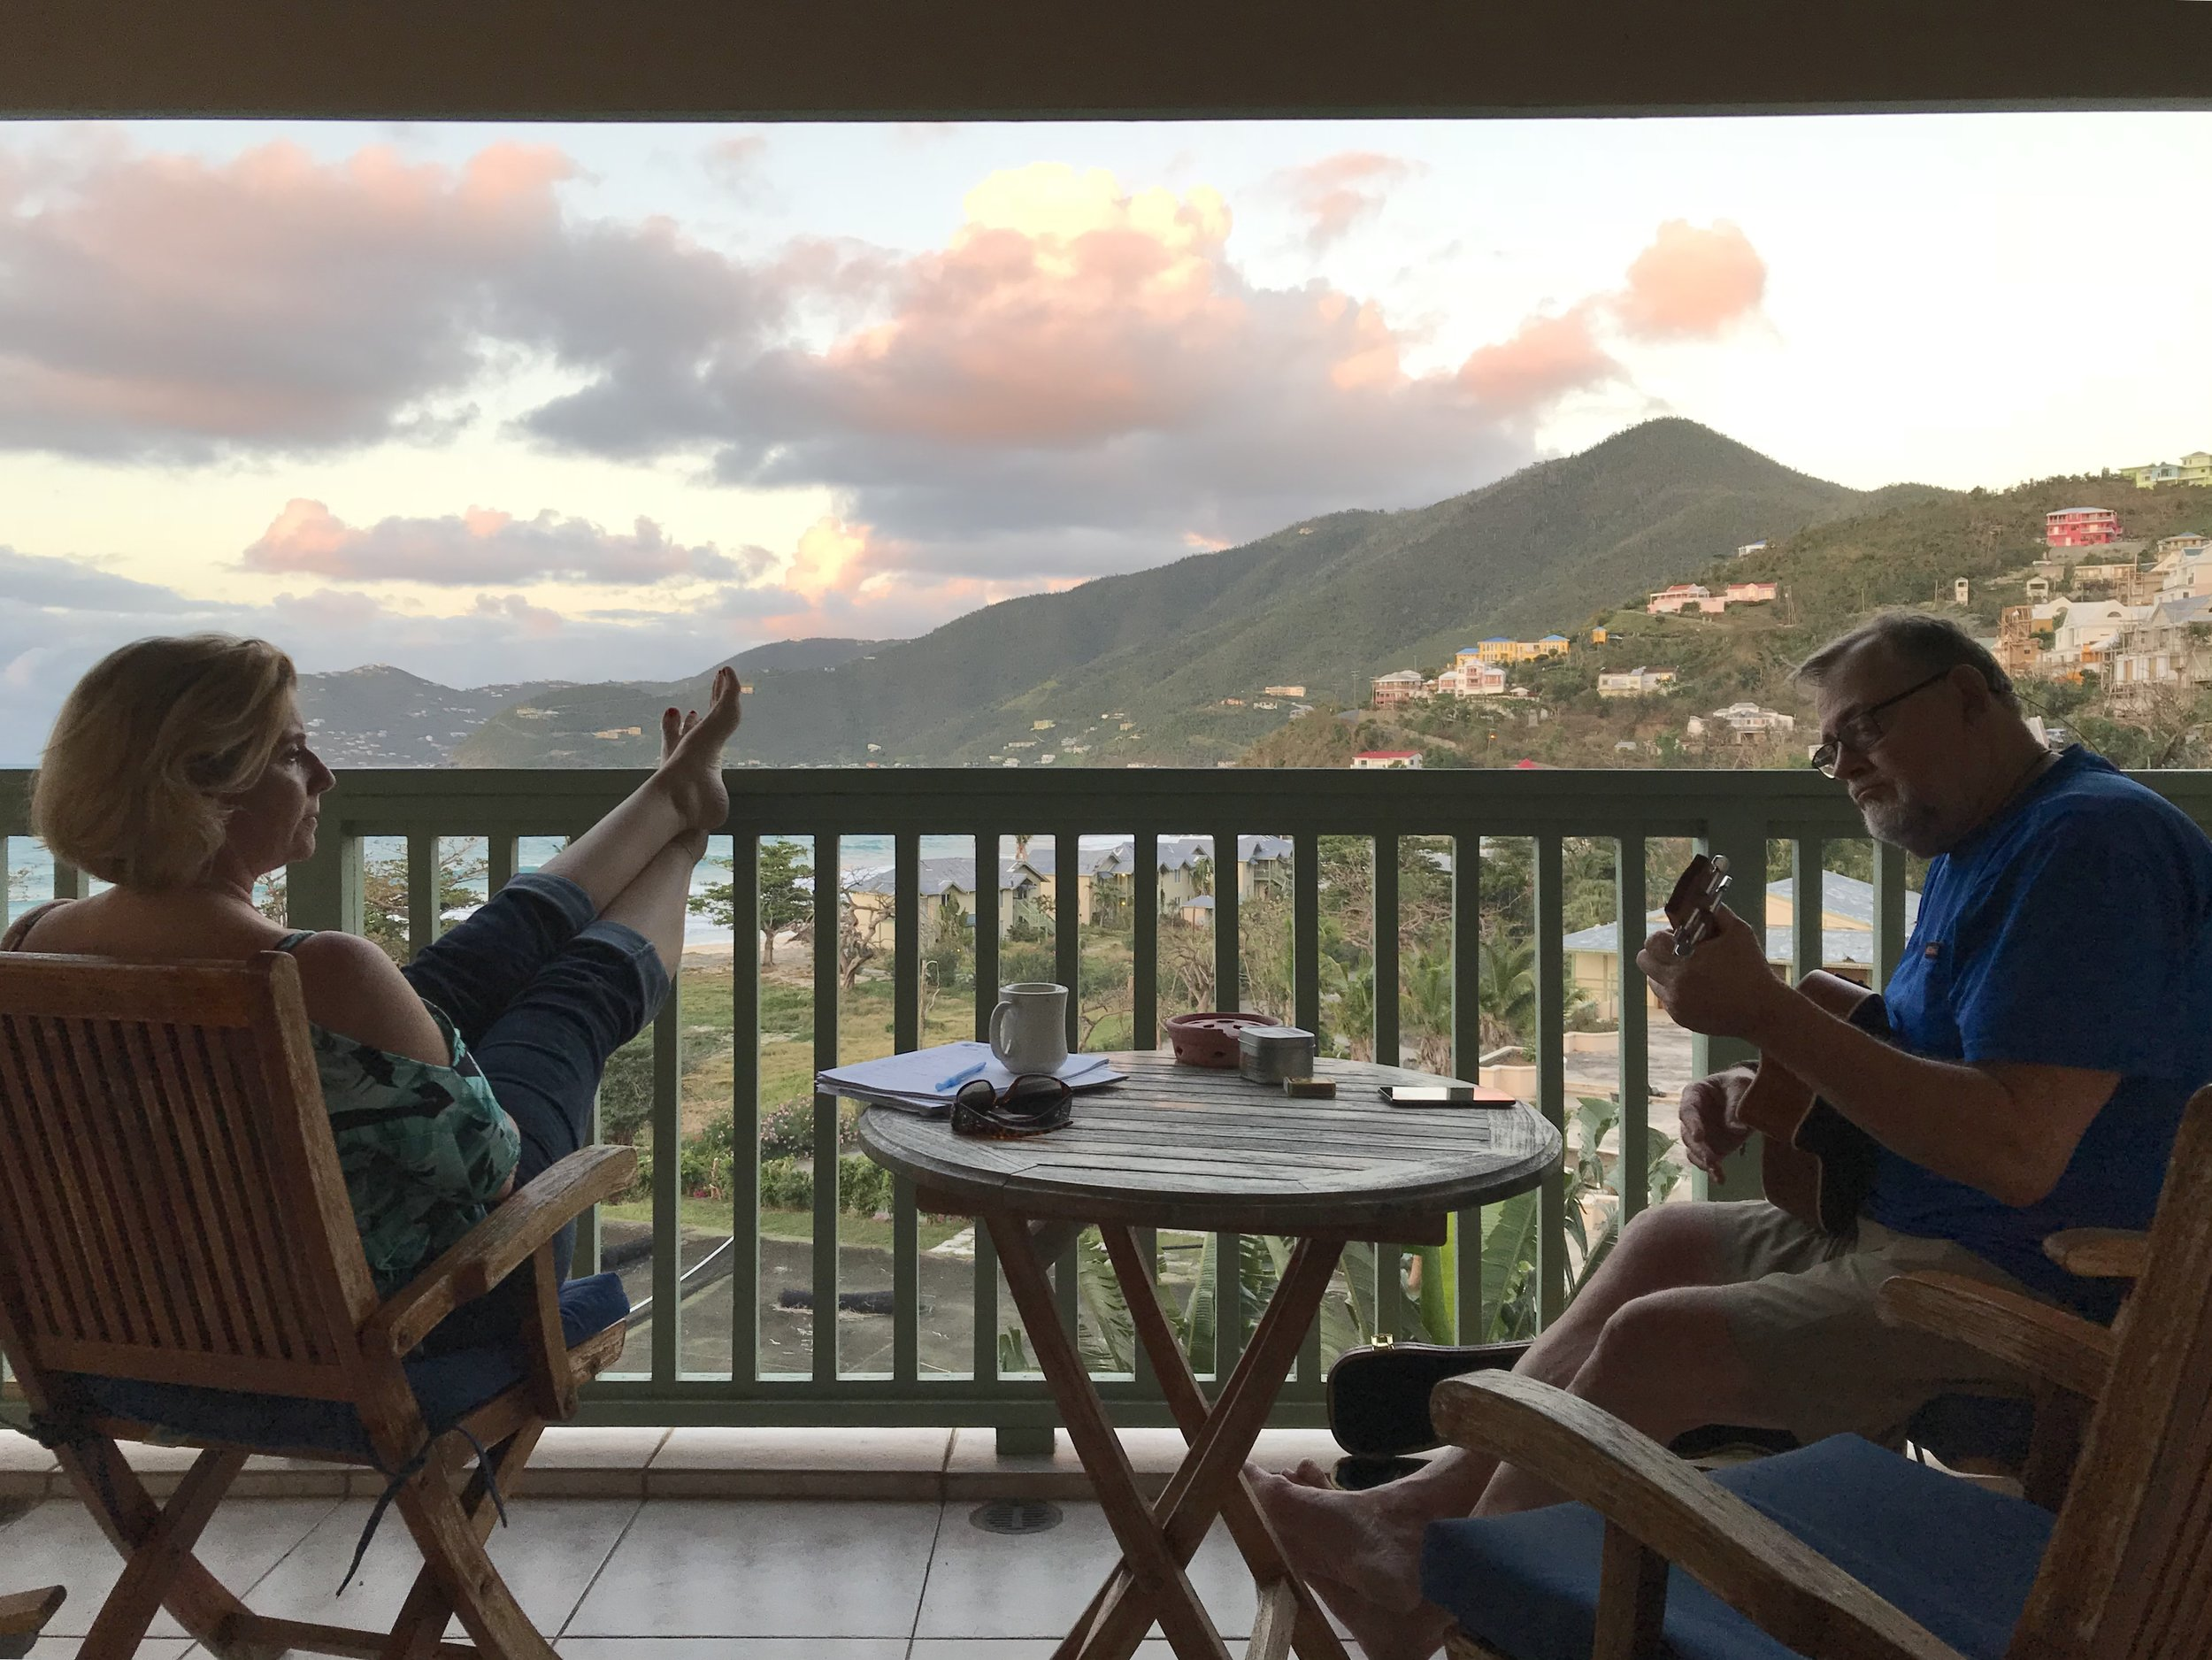 Miriam and Bob taking a little time for music on our balcony. The view, the skies, the sea here, just as beautiful as ever.